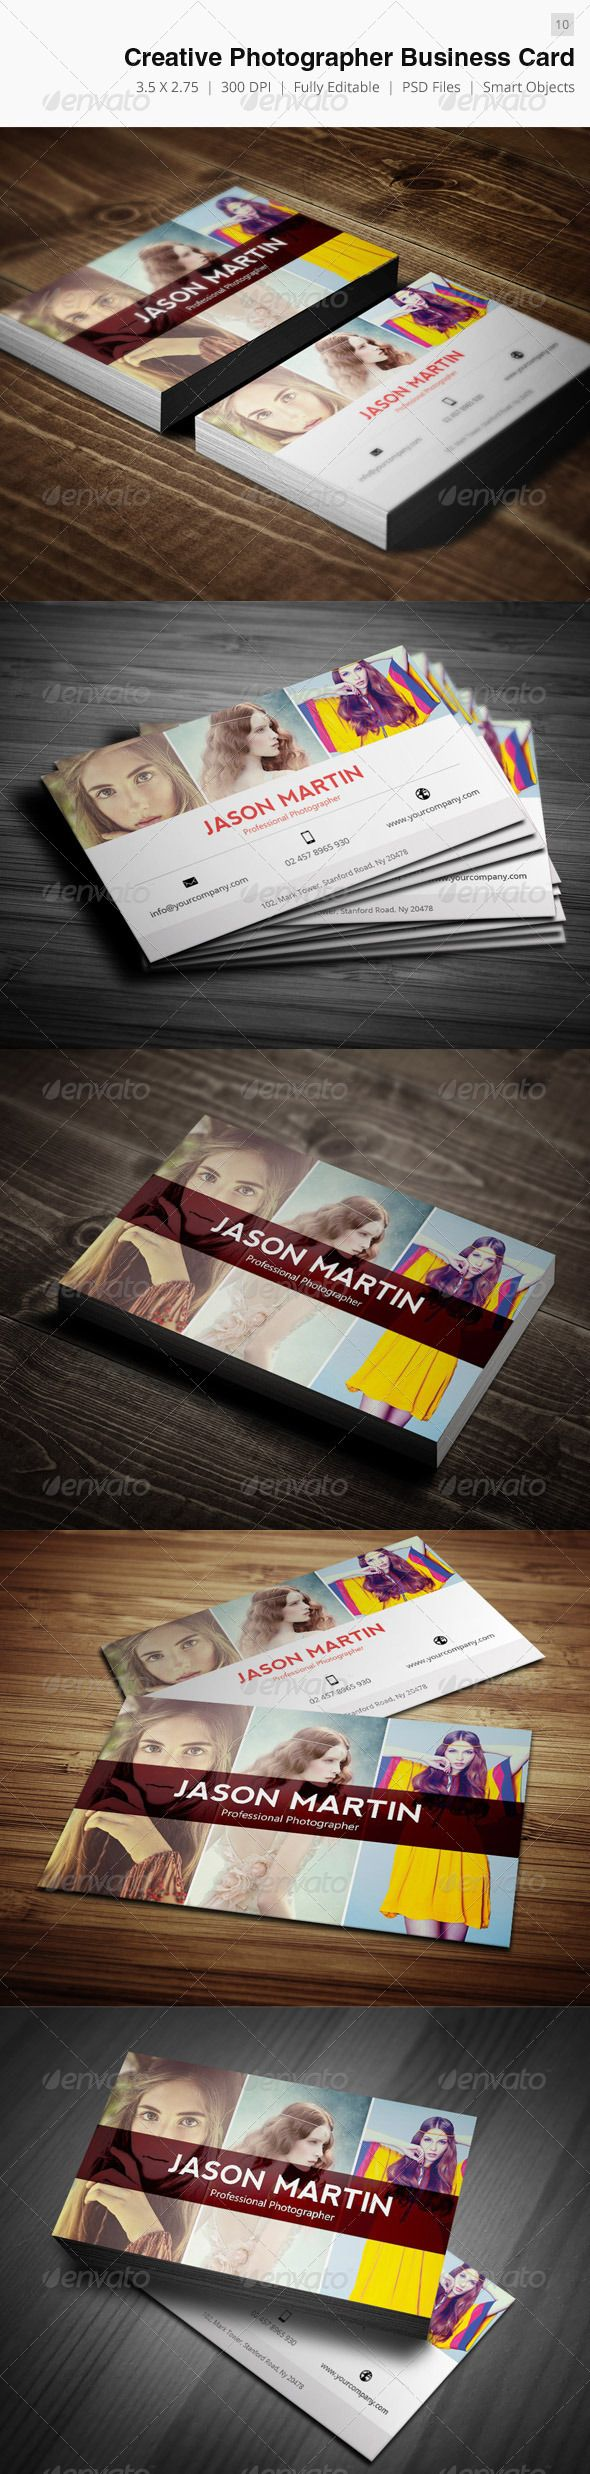 464 best business cards images on pinterest business card design creative photographer business card 10 reheart Choice Image